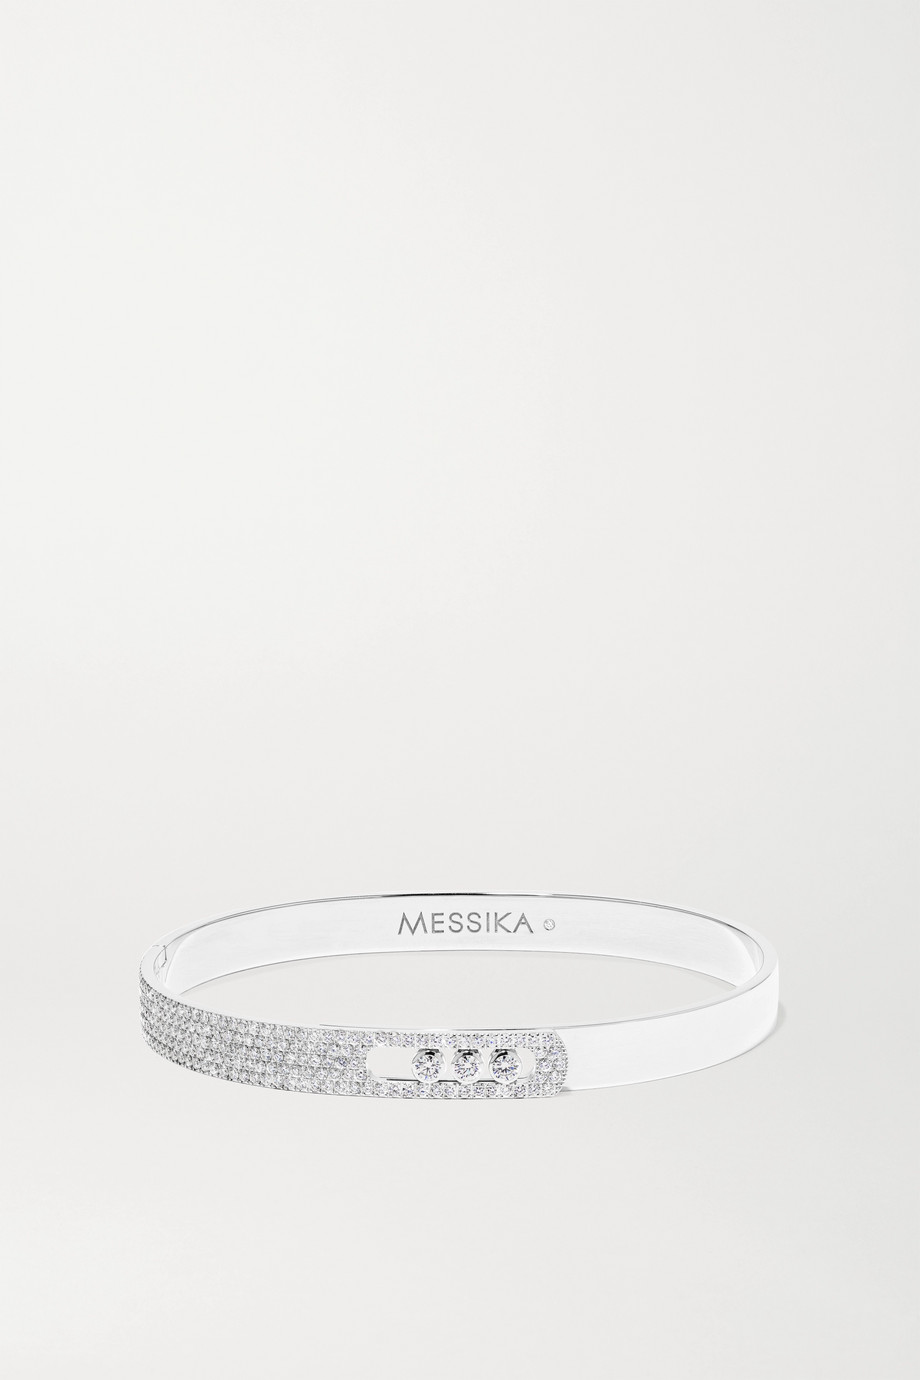 Messika Bracelet jonc en or blanc 18 carats et diamants Move Noa